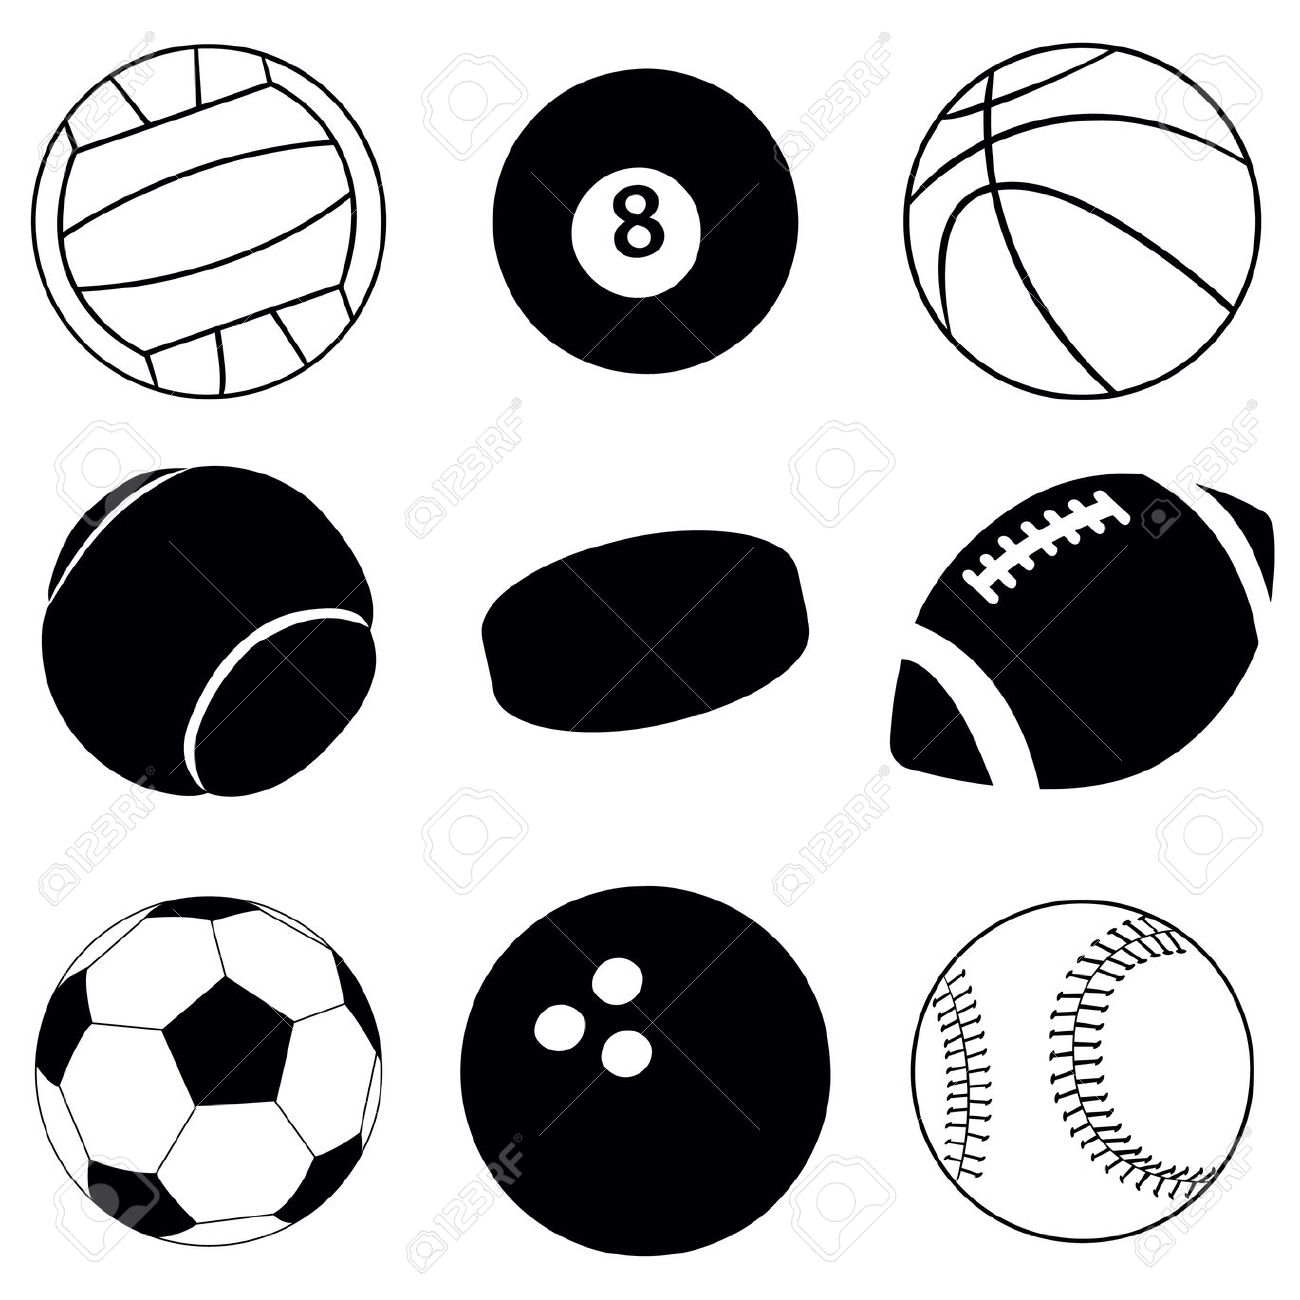 Sports black and white clipart graphic freeuse download Sport Clipart Black And White | Free download best Sport ... graphic freeuse download